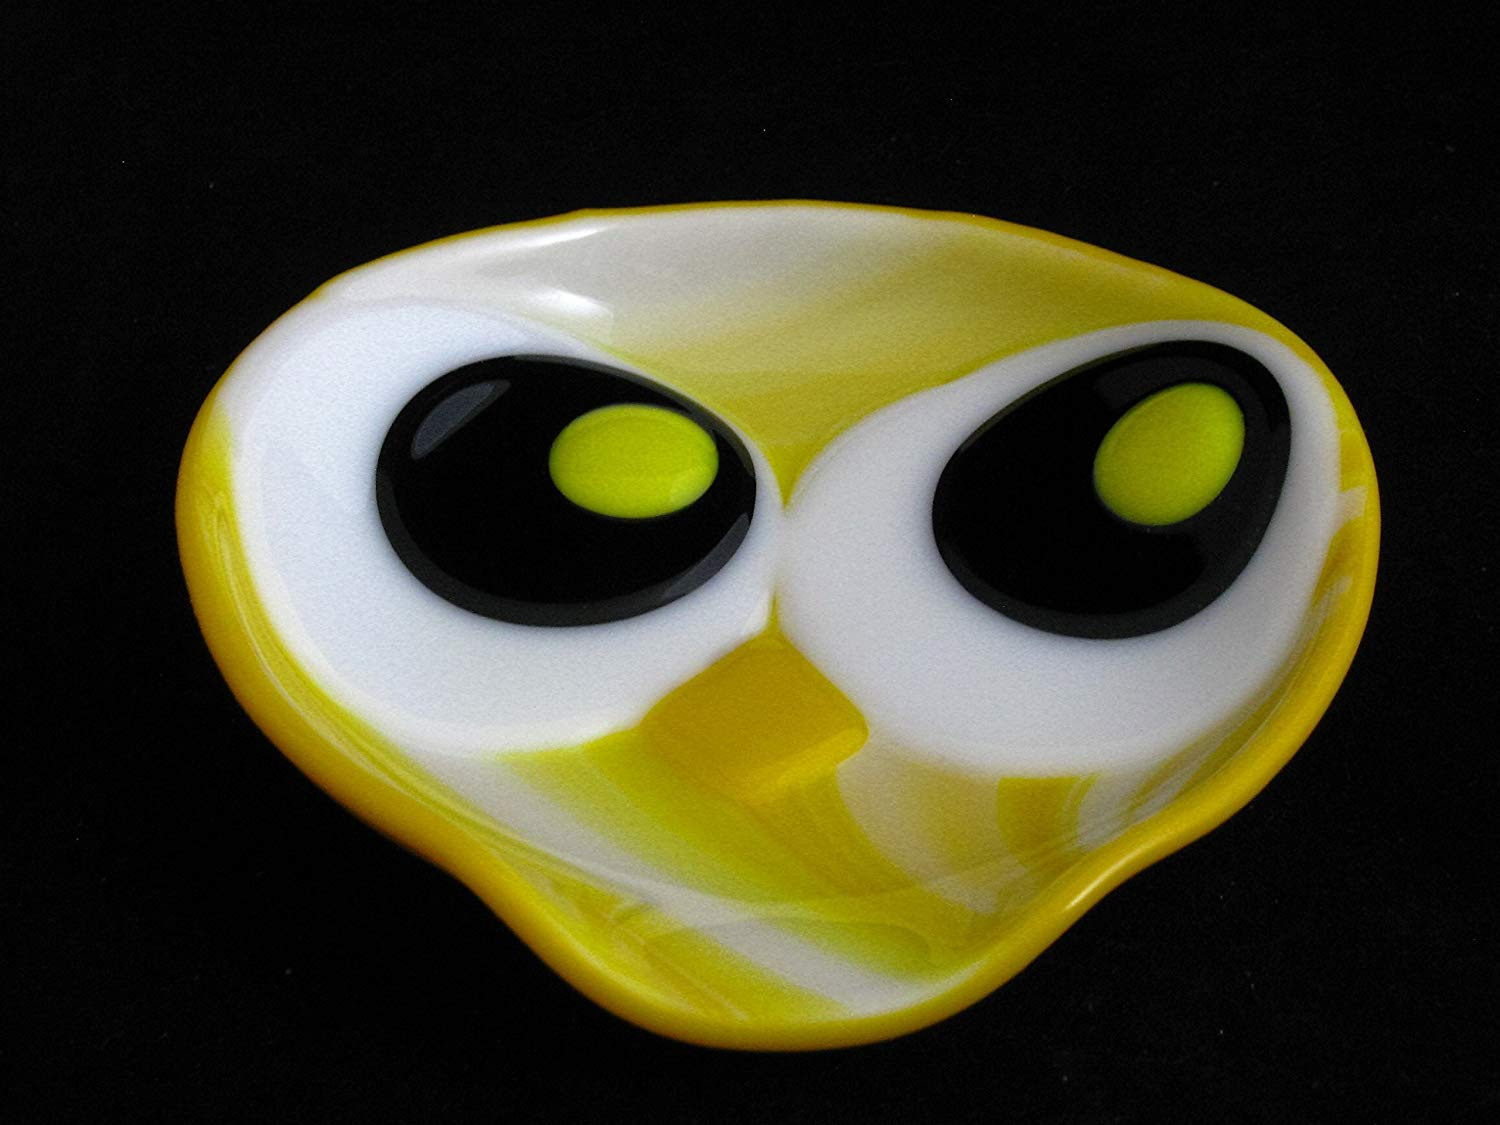 Owl Spoon Rest, Round Fused Glass Spoon Rest, Spoon Holder, Yellow Spoon Rest, Yellow Owl Spoon Rest, Spoonrest